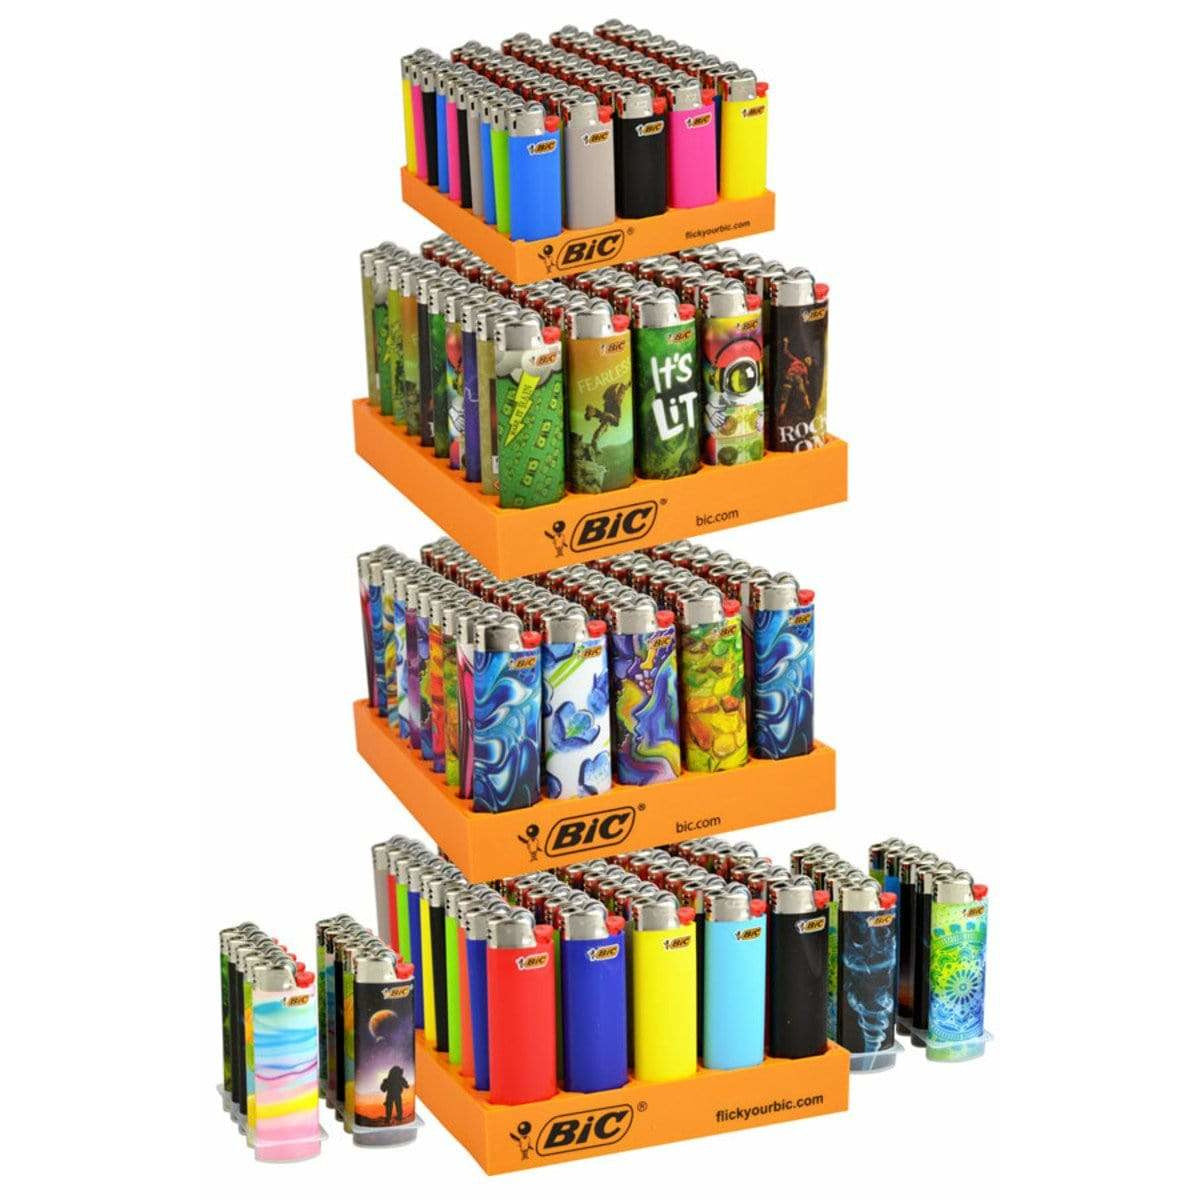 BIC - 4 Tier Refill w 20 Free SE - 220 Lighters - Everything But The Plant